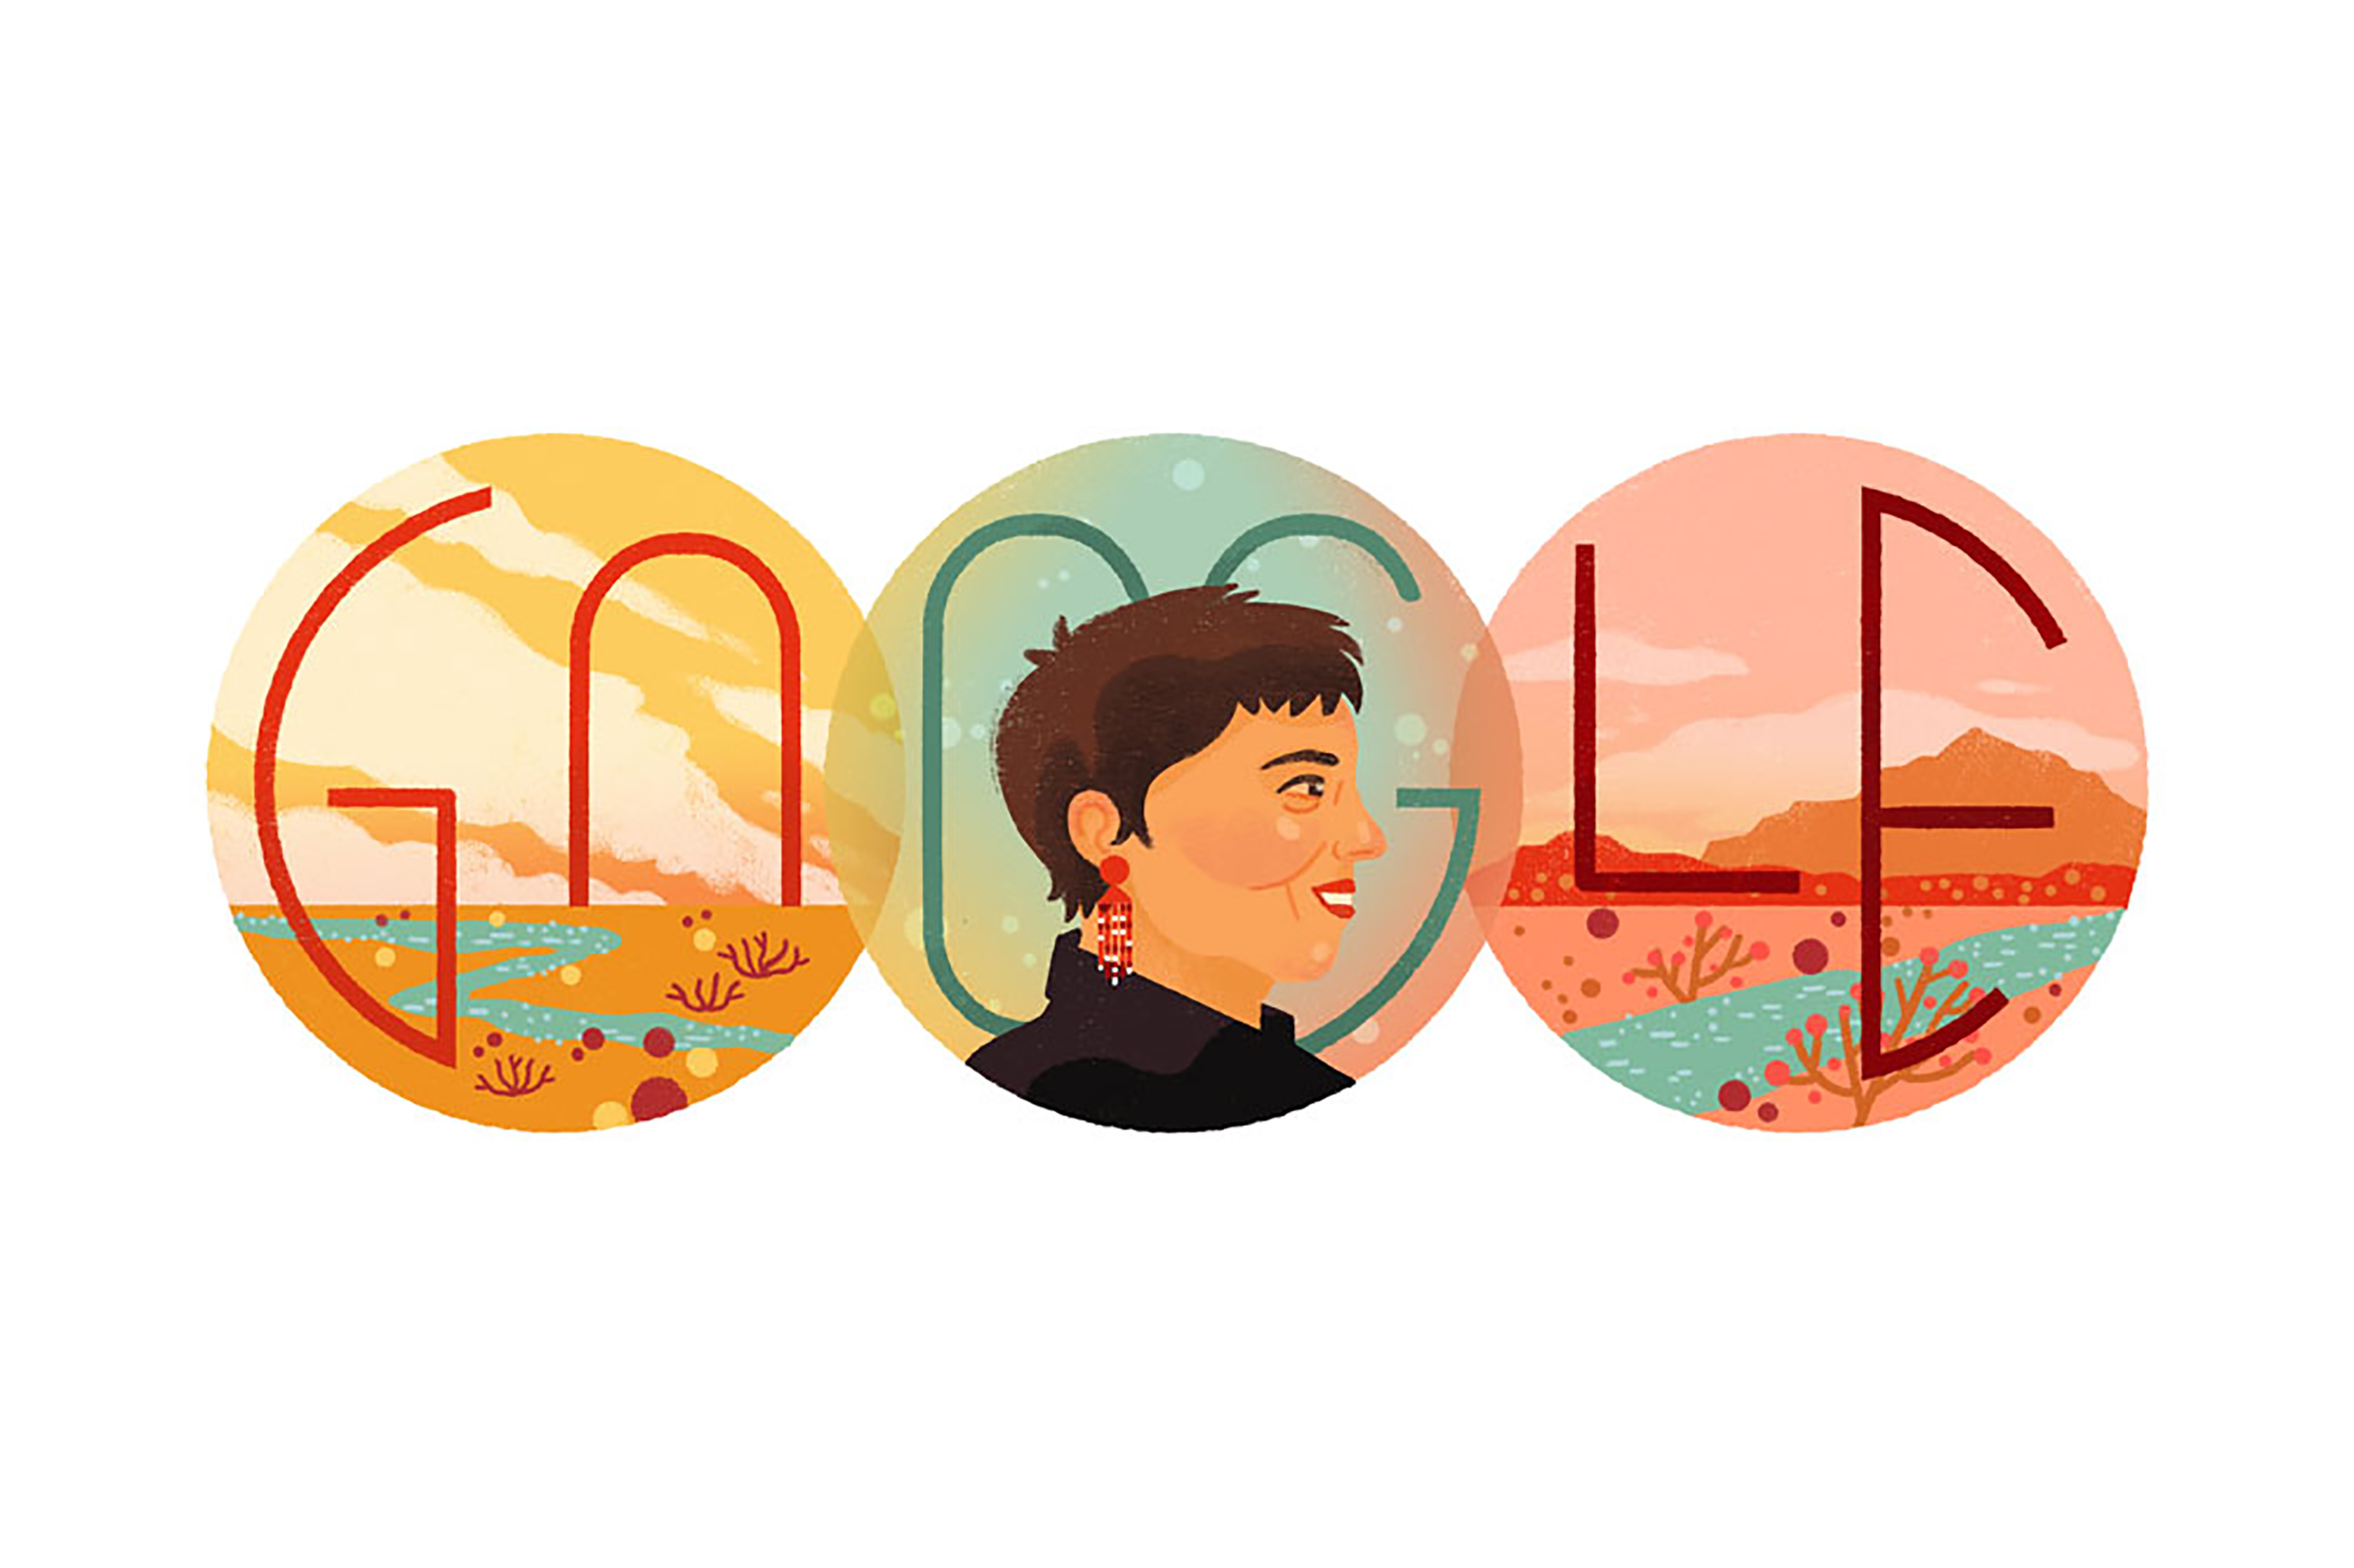 The Google Doodle for Gloria E. Anzaldúa's 75th Birthday, Sept. 26, 2017.